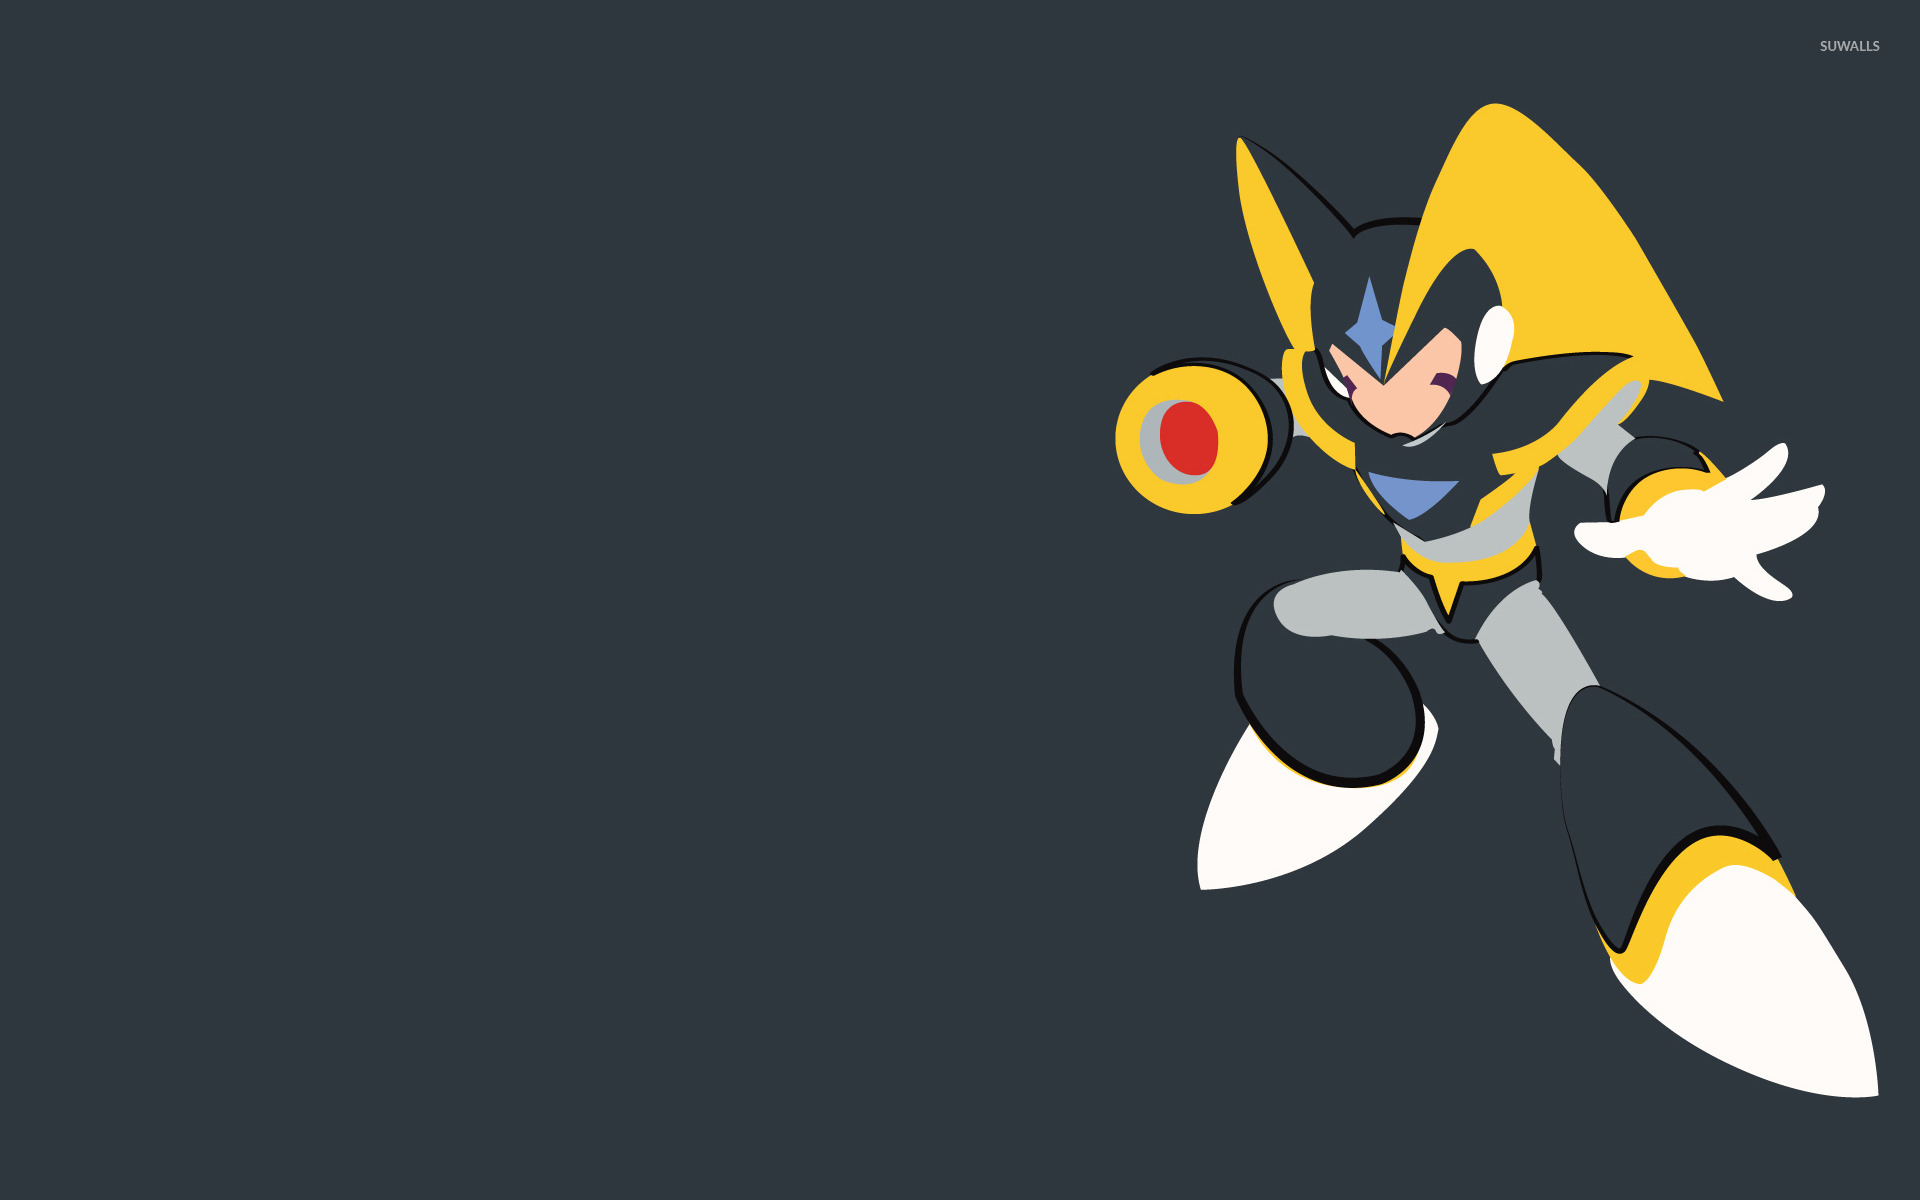 Bass - Mega Man wallpaper - Game